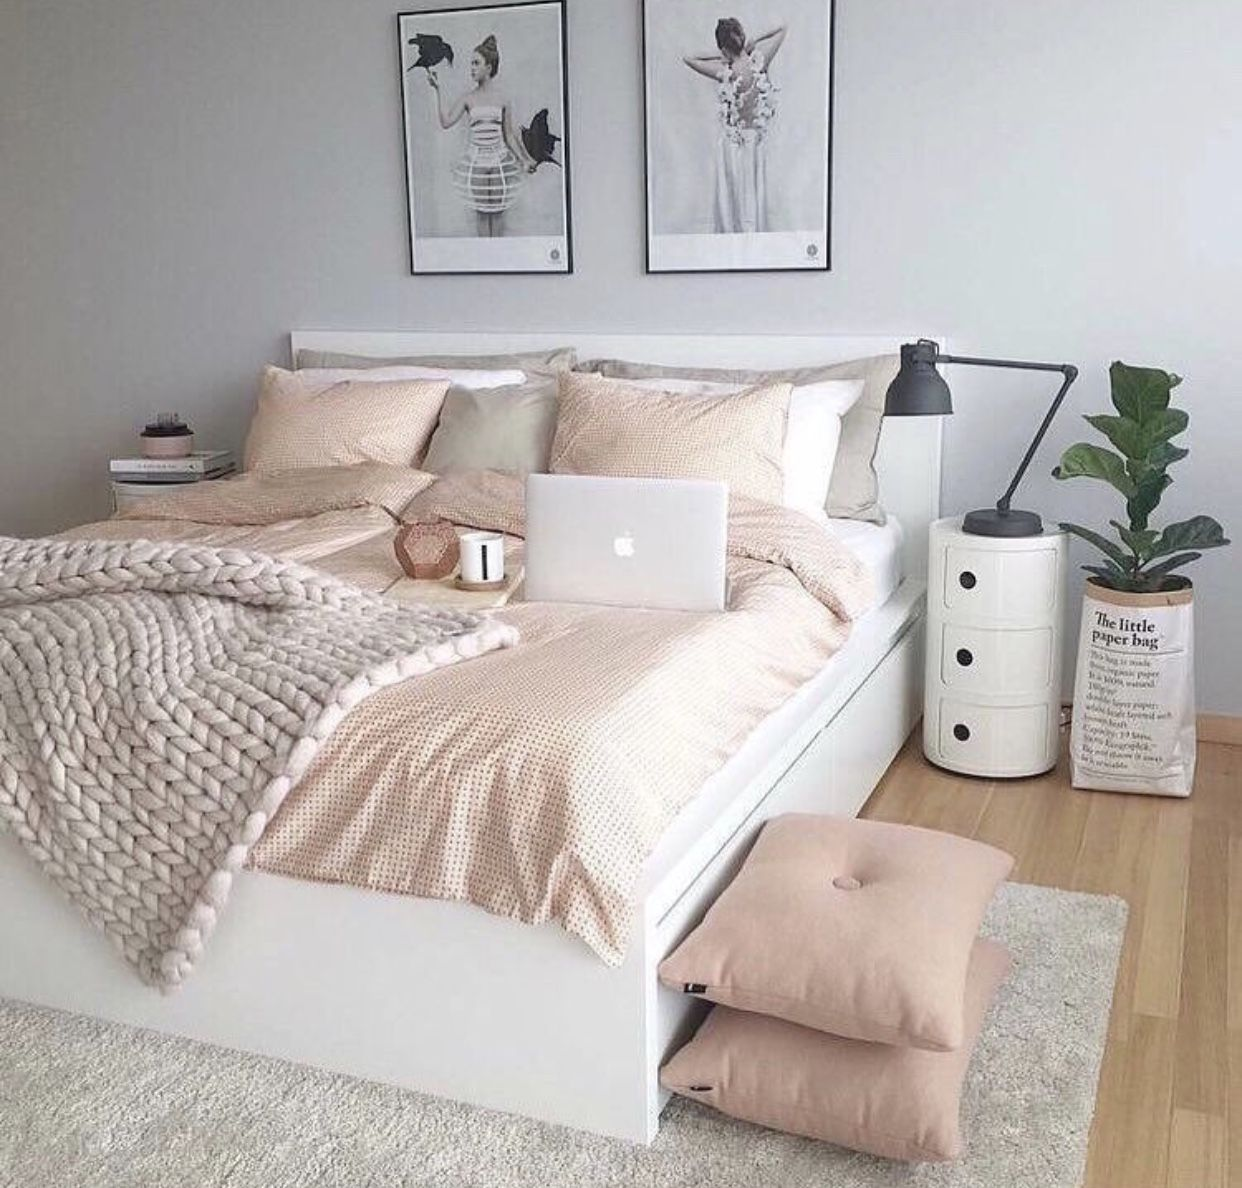 Schlafzimmer Gezeichnet Pin By Holly Smith On Bedrooms In 2018 Pinterest Schlafzimmer